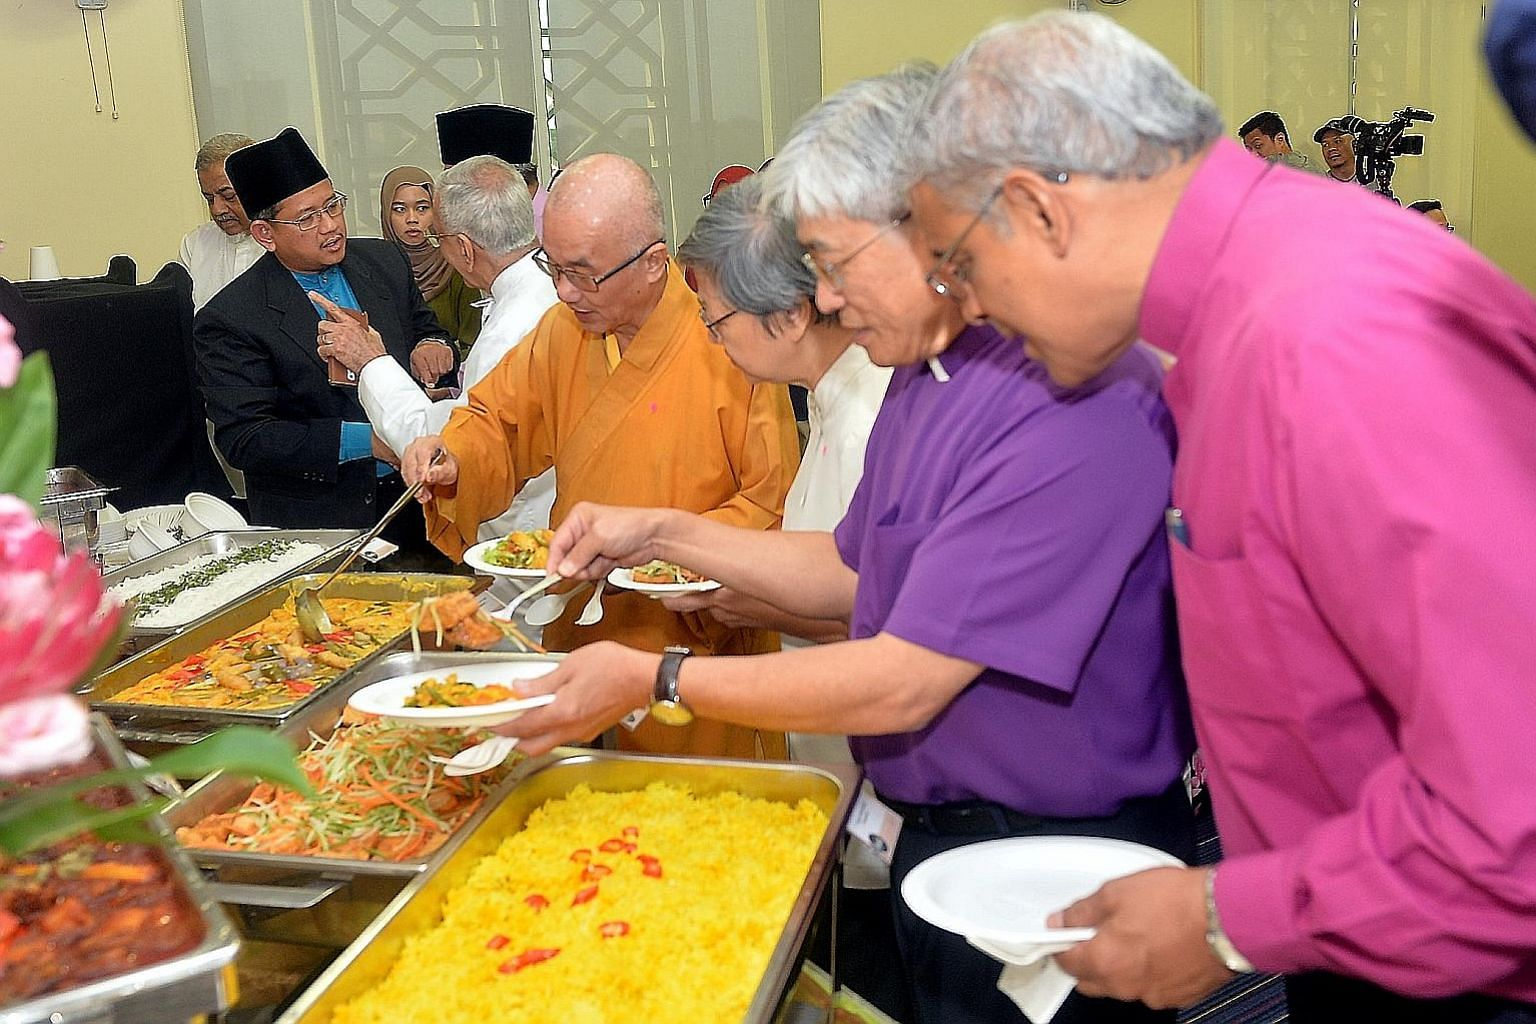 At yesterday's event are (from left at table) Mufti Fatris Bakaram, Inter-Religious Organisation president and Parsi Zoroastrian Association president Rustom Ghadiali, Buddhist Federation president Seck Kwang Phing, Roman Catholic Church's Sister Mar